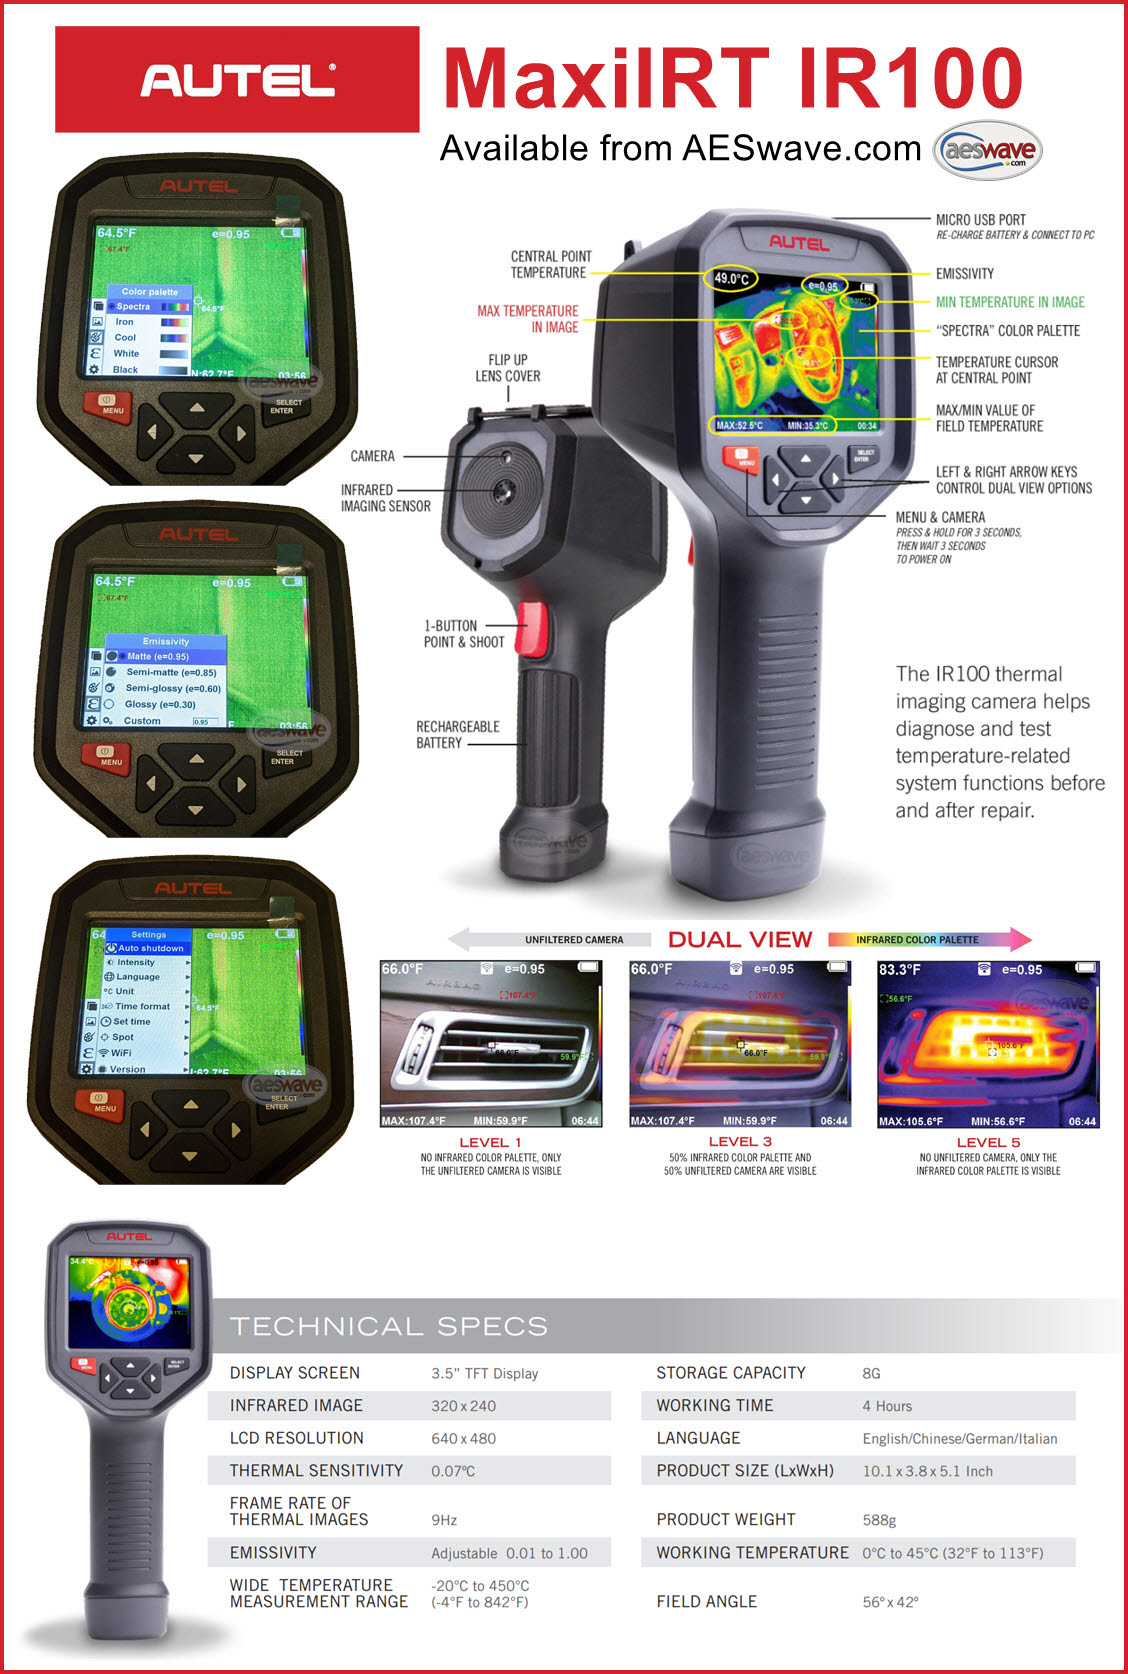 Autel MaxiIRT IR100 Thermal Camera details